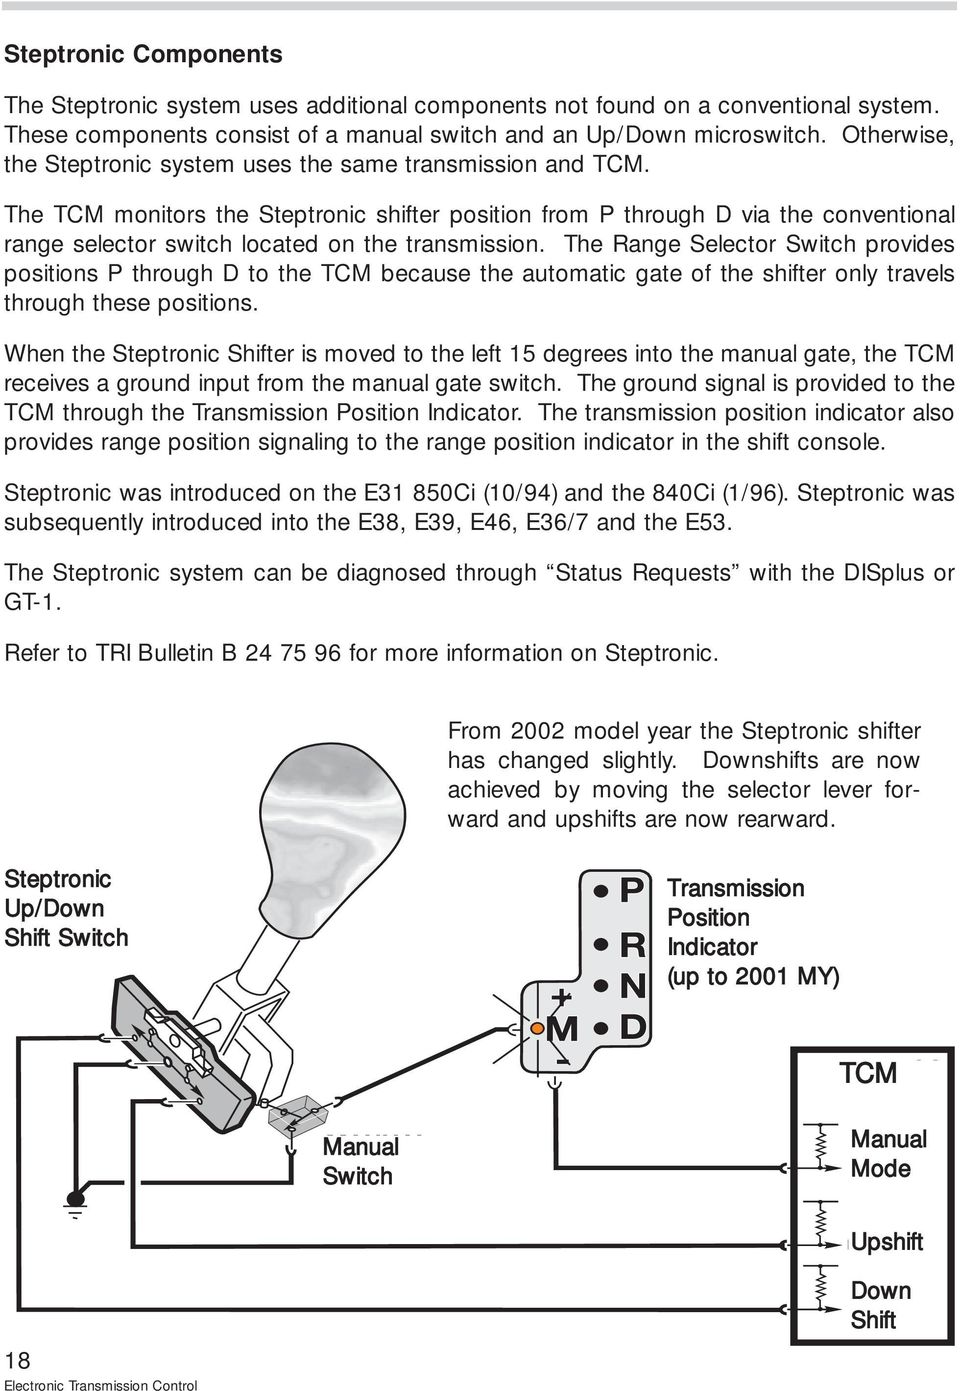 Table of Contents  Electronic Transmission Control - PDF